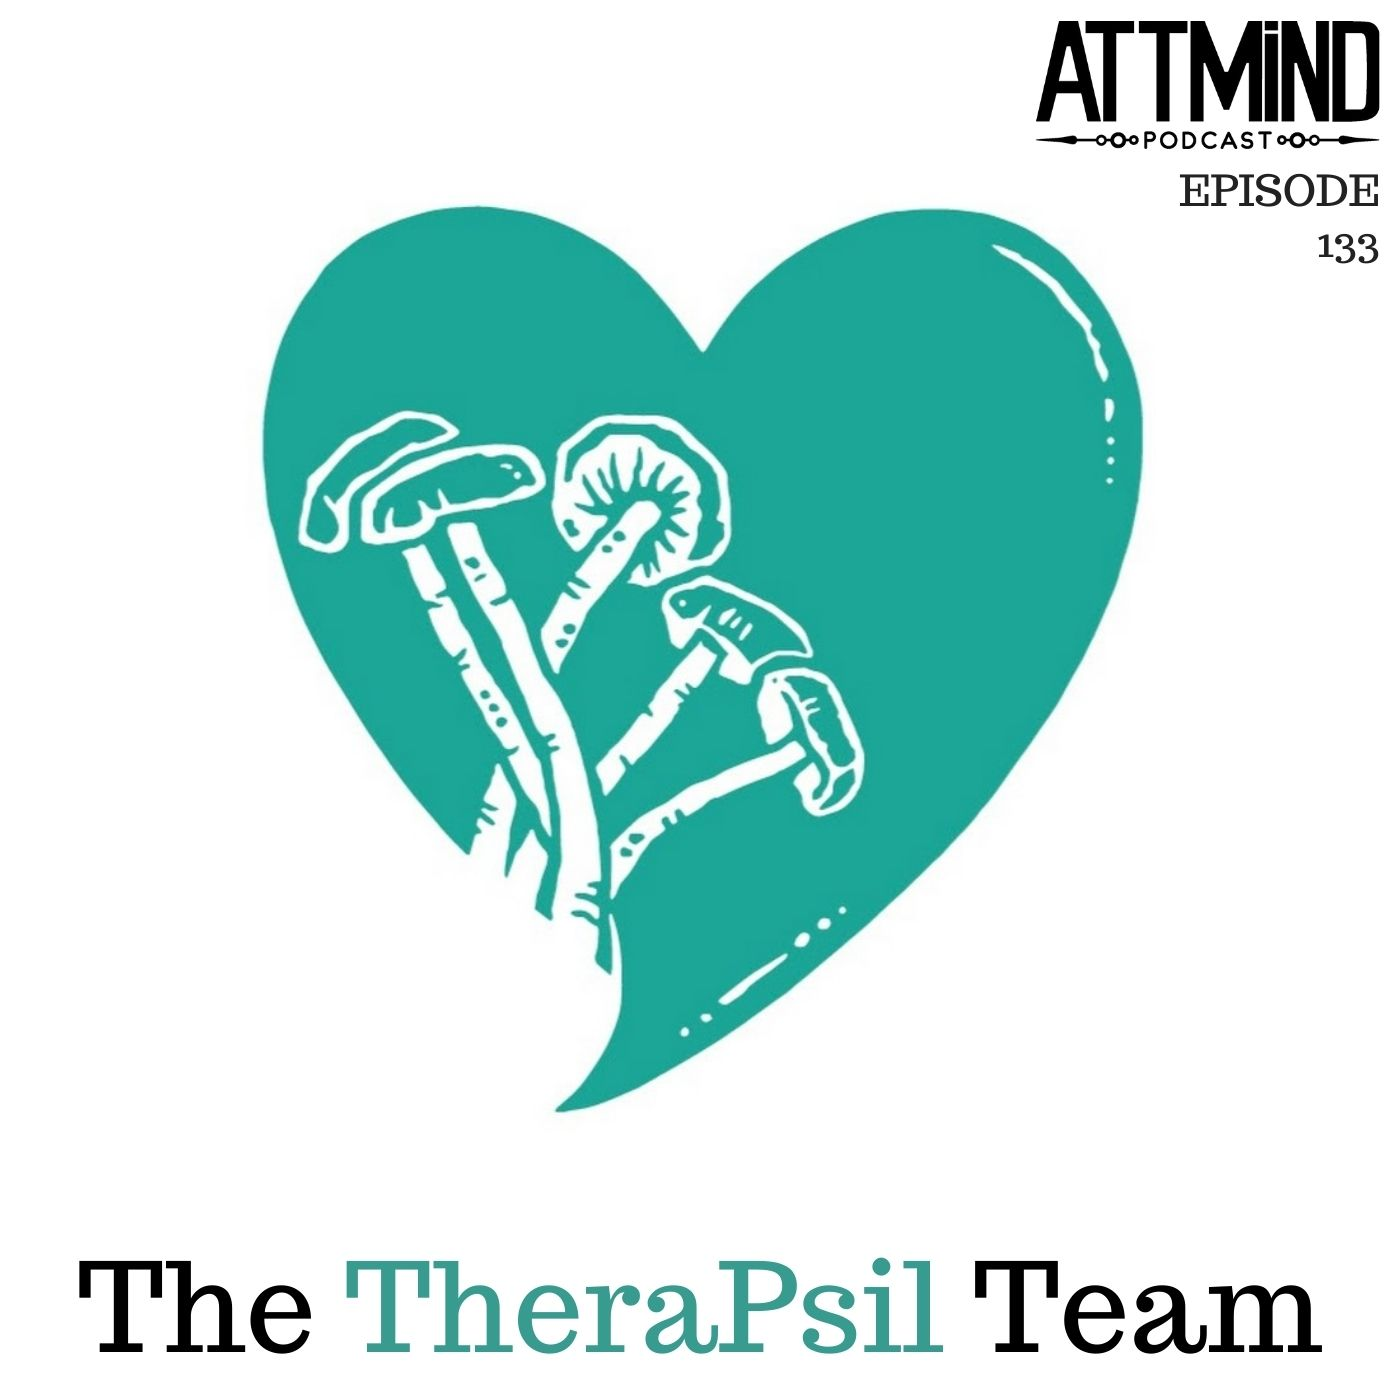 Psilocybin-Assisted Therapy For The Terminally Ill | TheraPsil ~ ATTMind 133